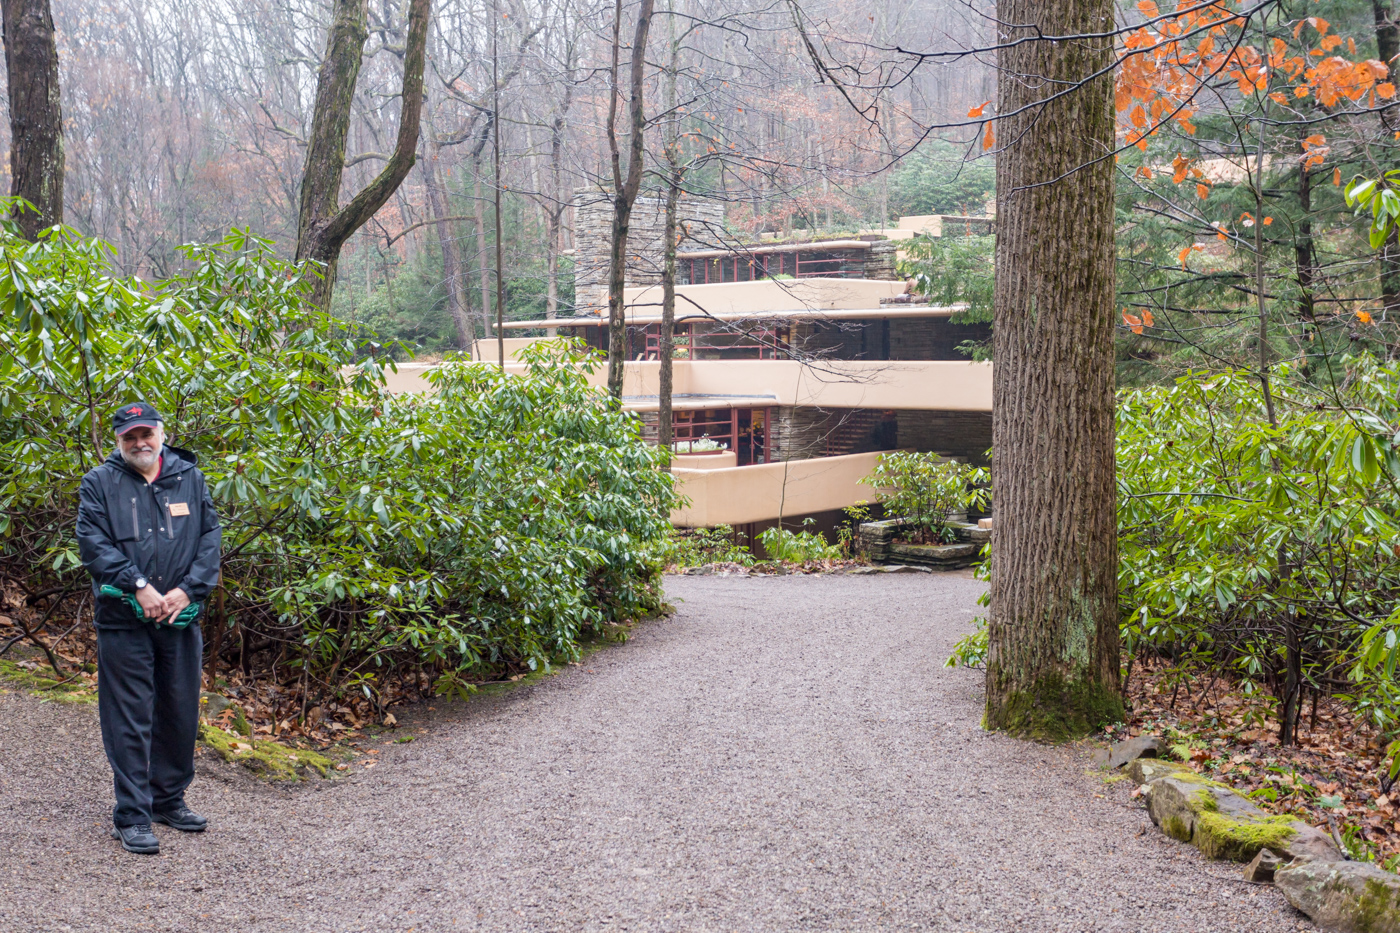 Tour guide Ken and a glimpse of Fallingwater